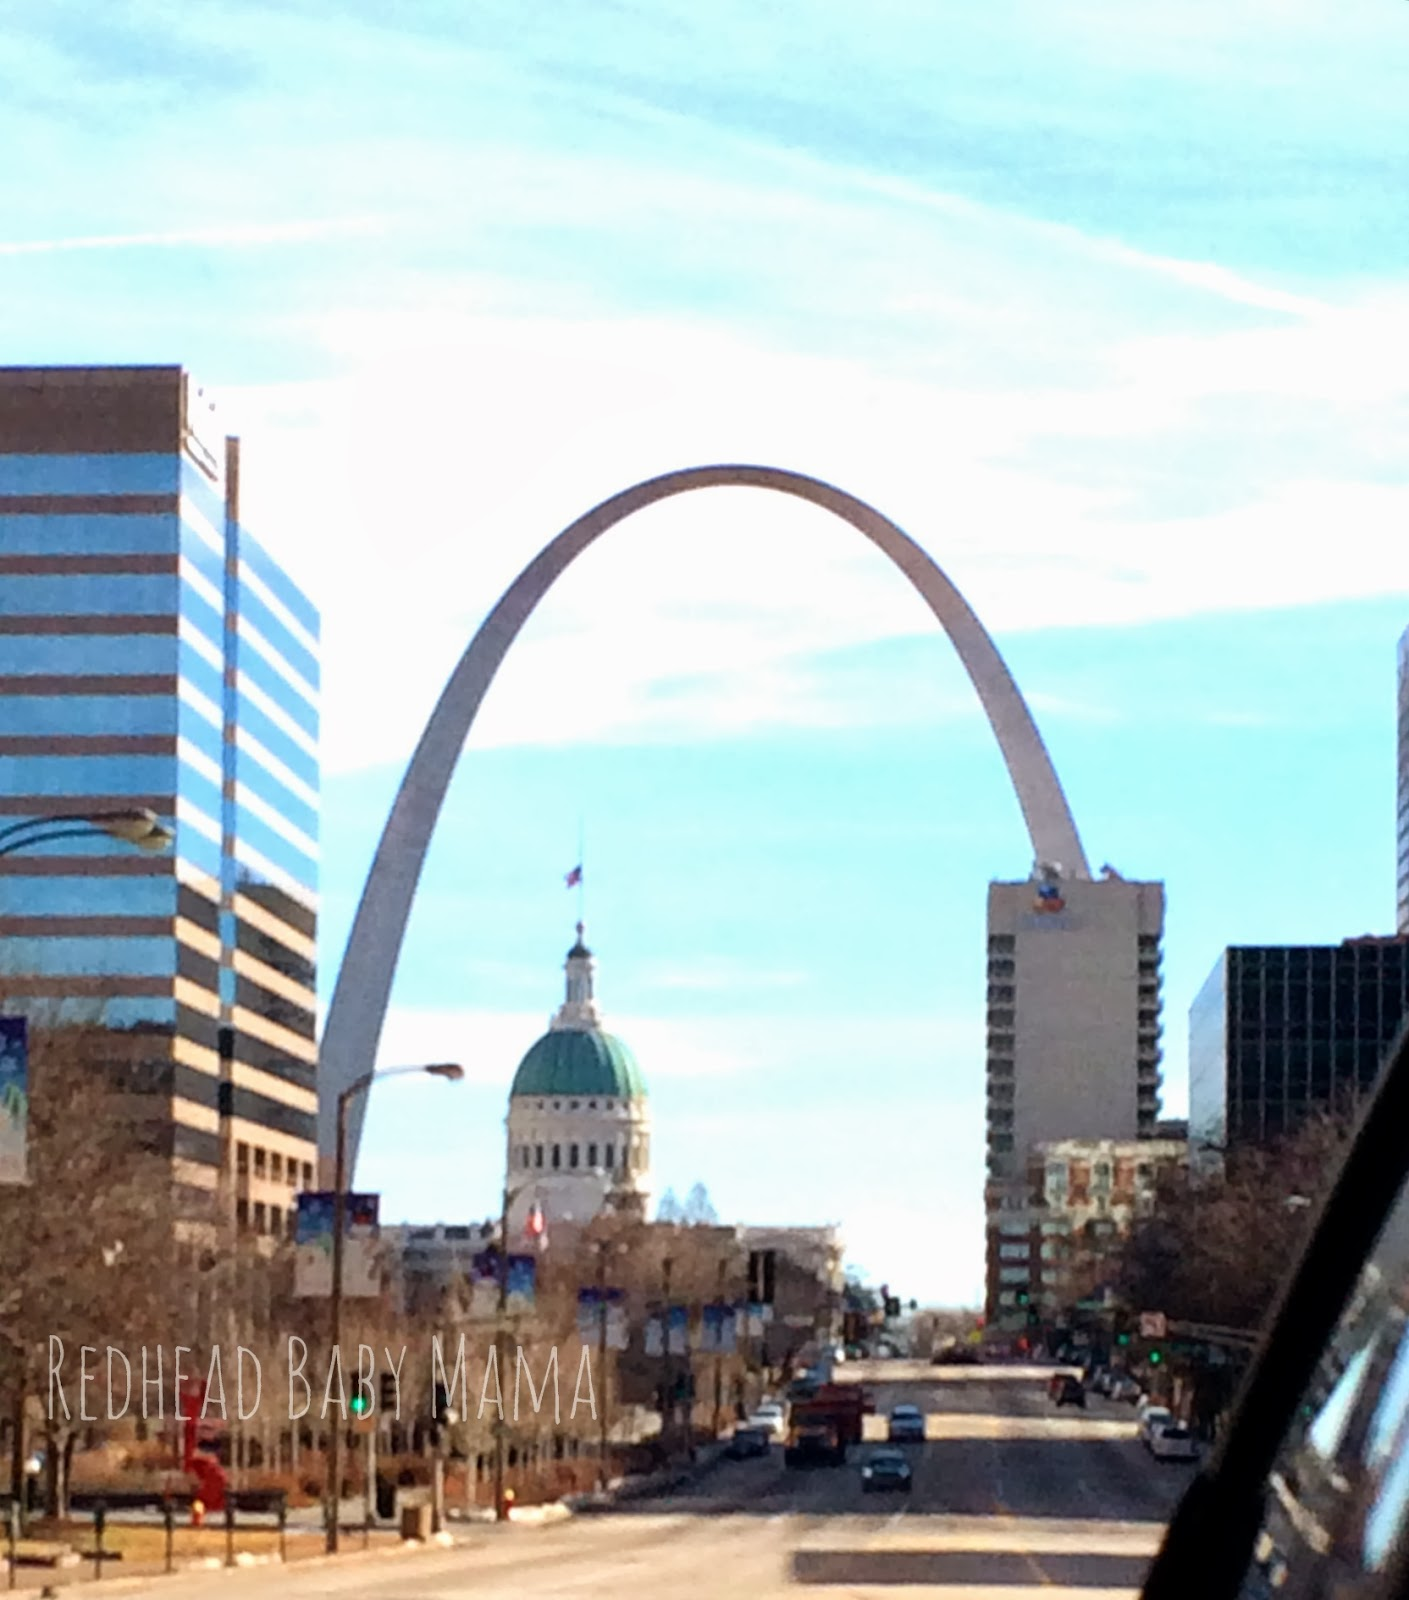 St. Louis arch - Gateway to the West - Redhead Baby Mama